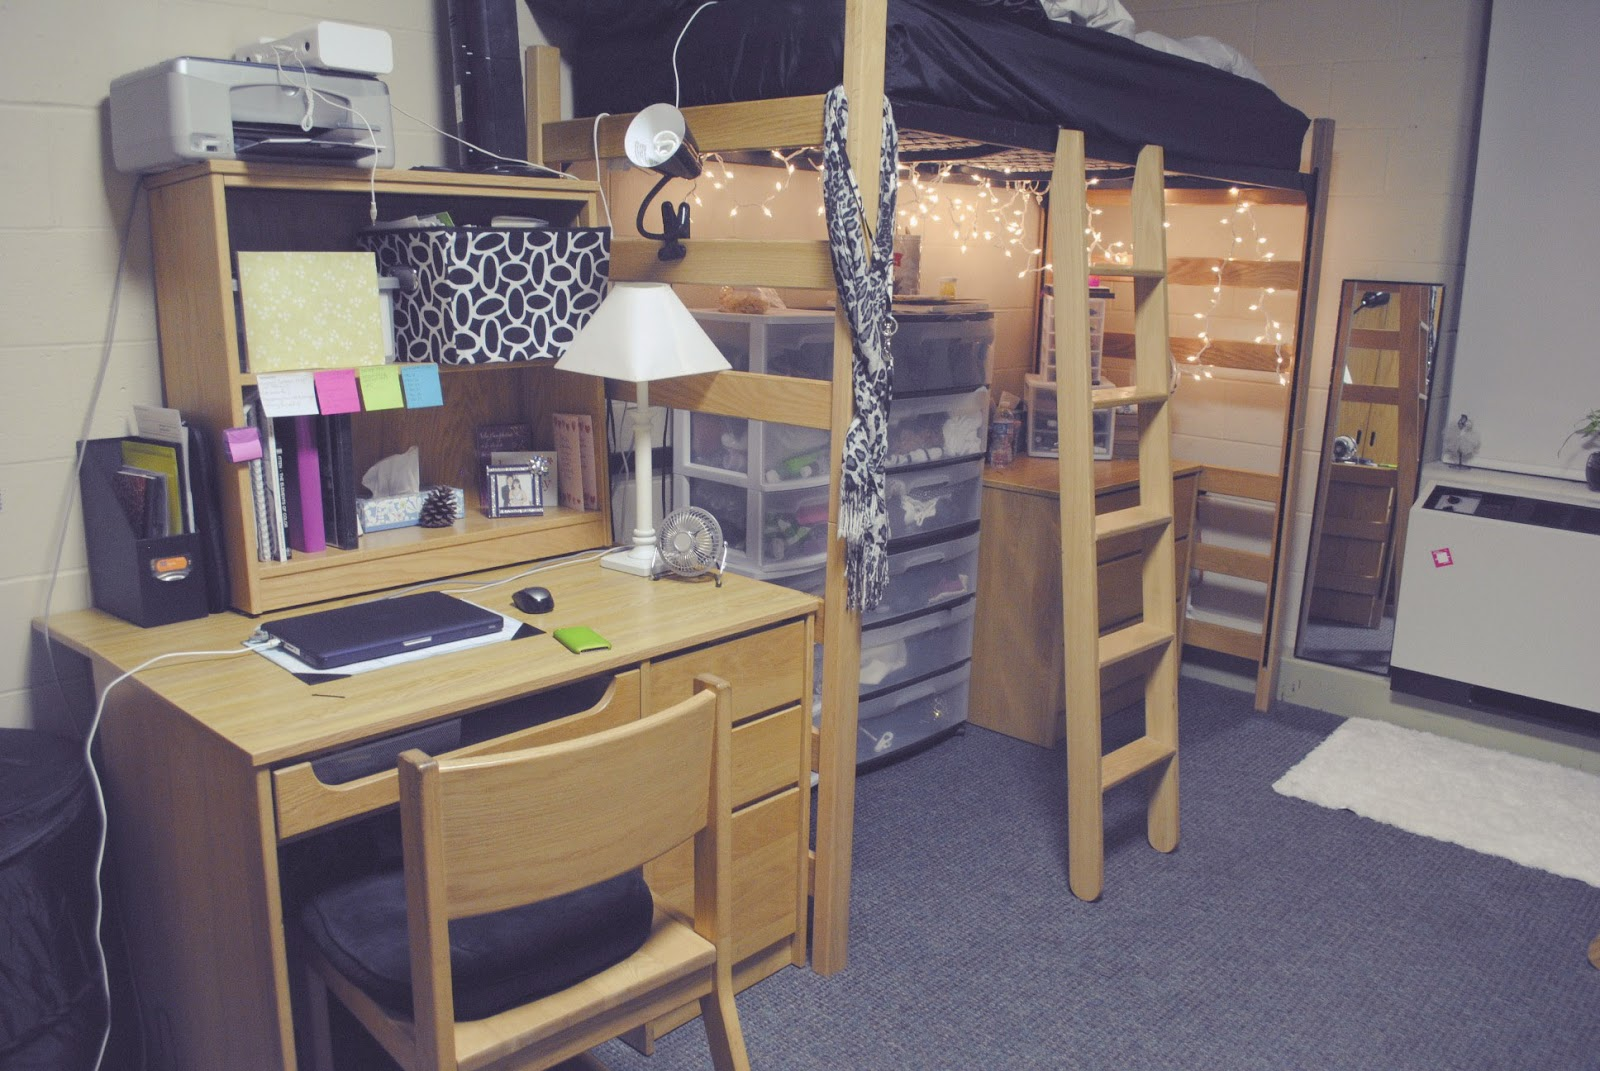 dorm decor ideas | decorating ideas